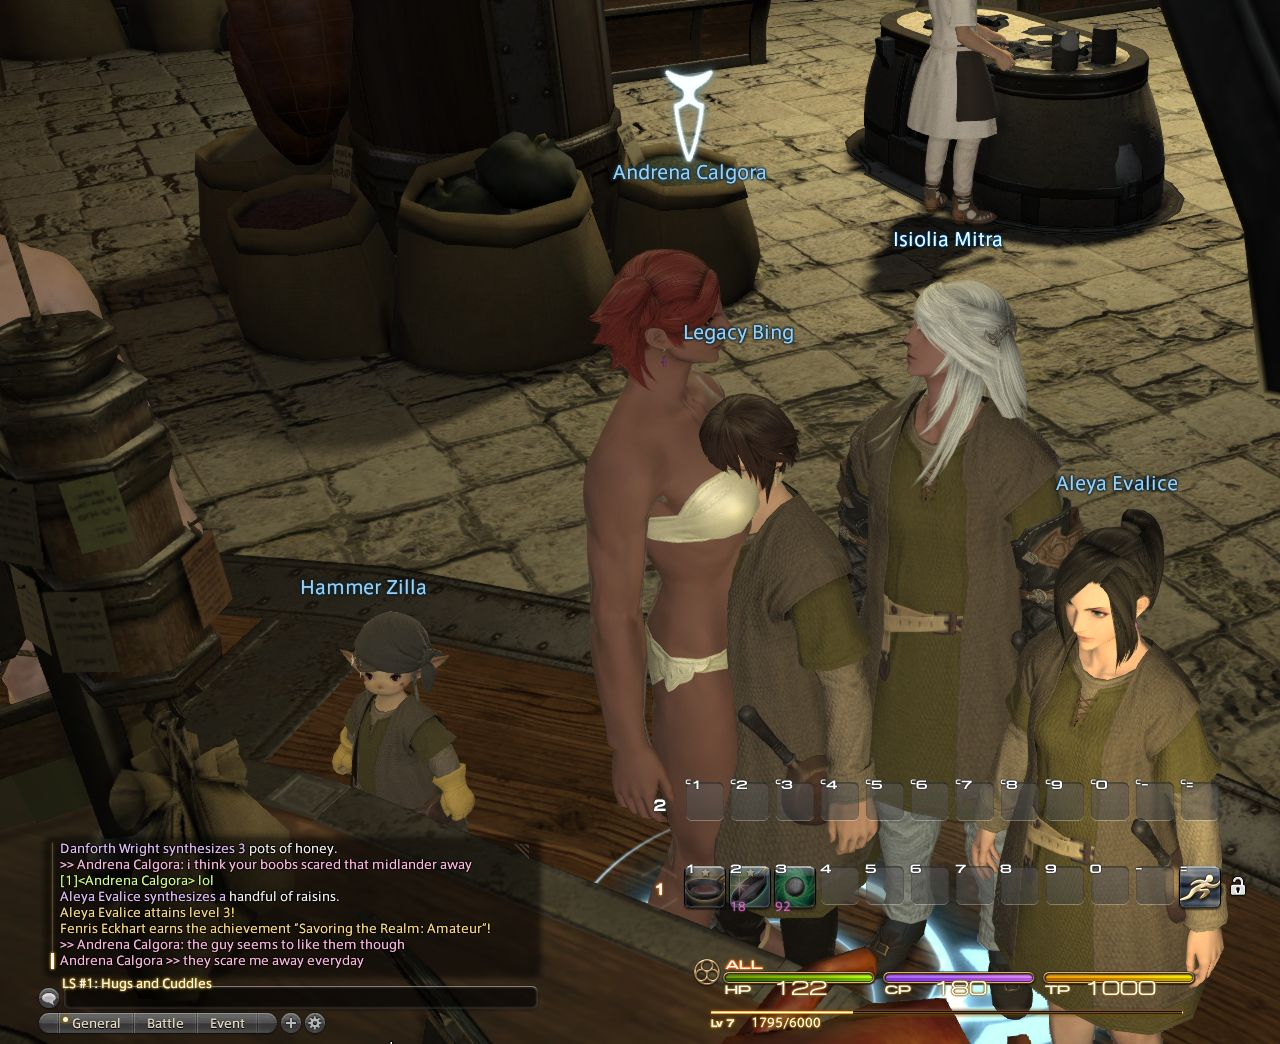 isiolia ffxiv cute fantastic awesome picture this comment cheesecake phase contest wanted just